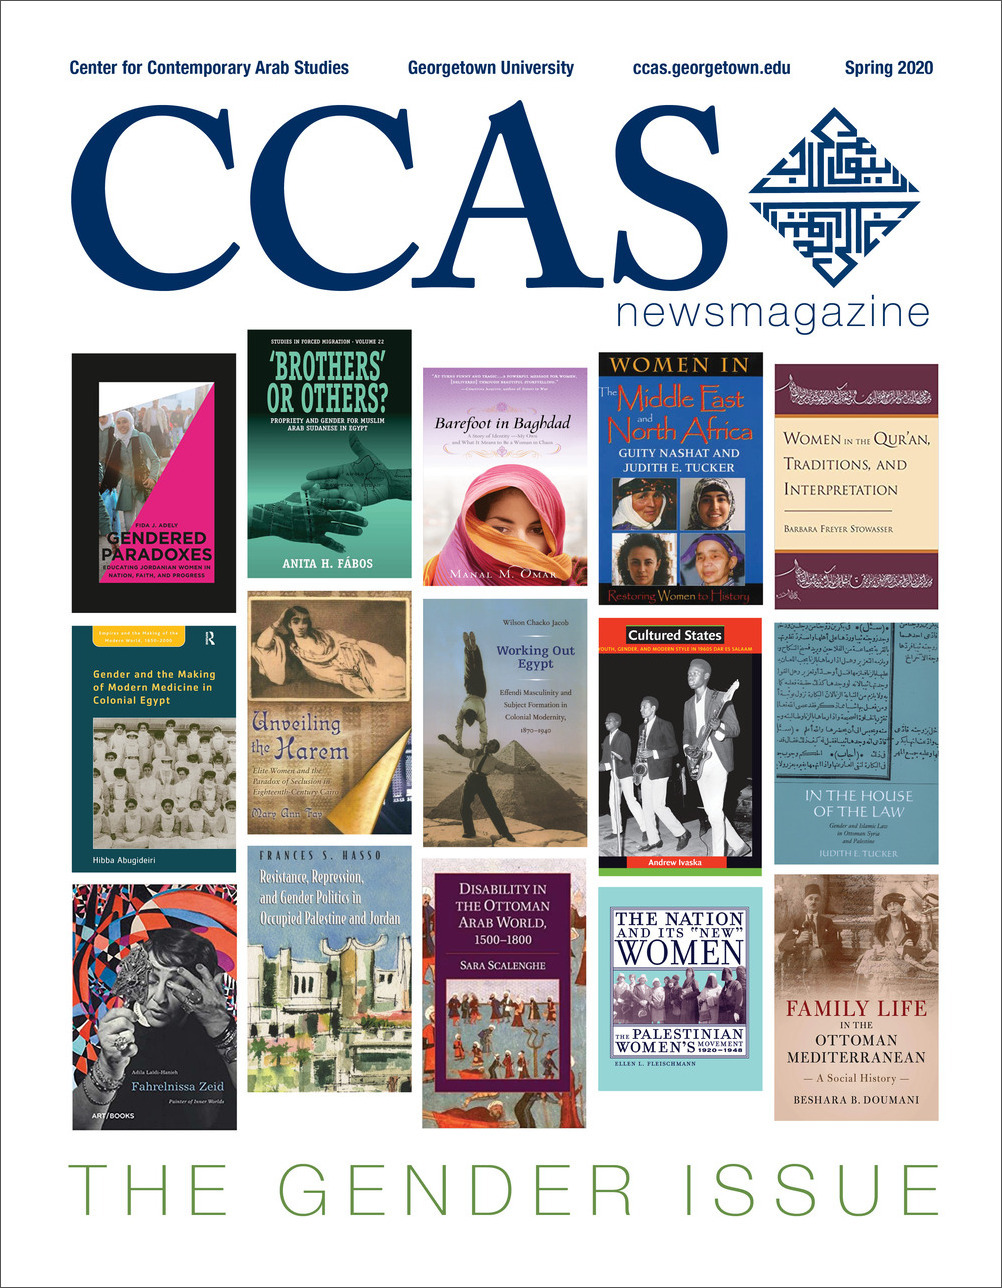 cover of the spring 2020 CCAS newsmagazine